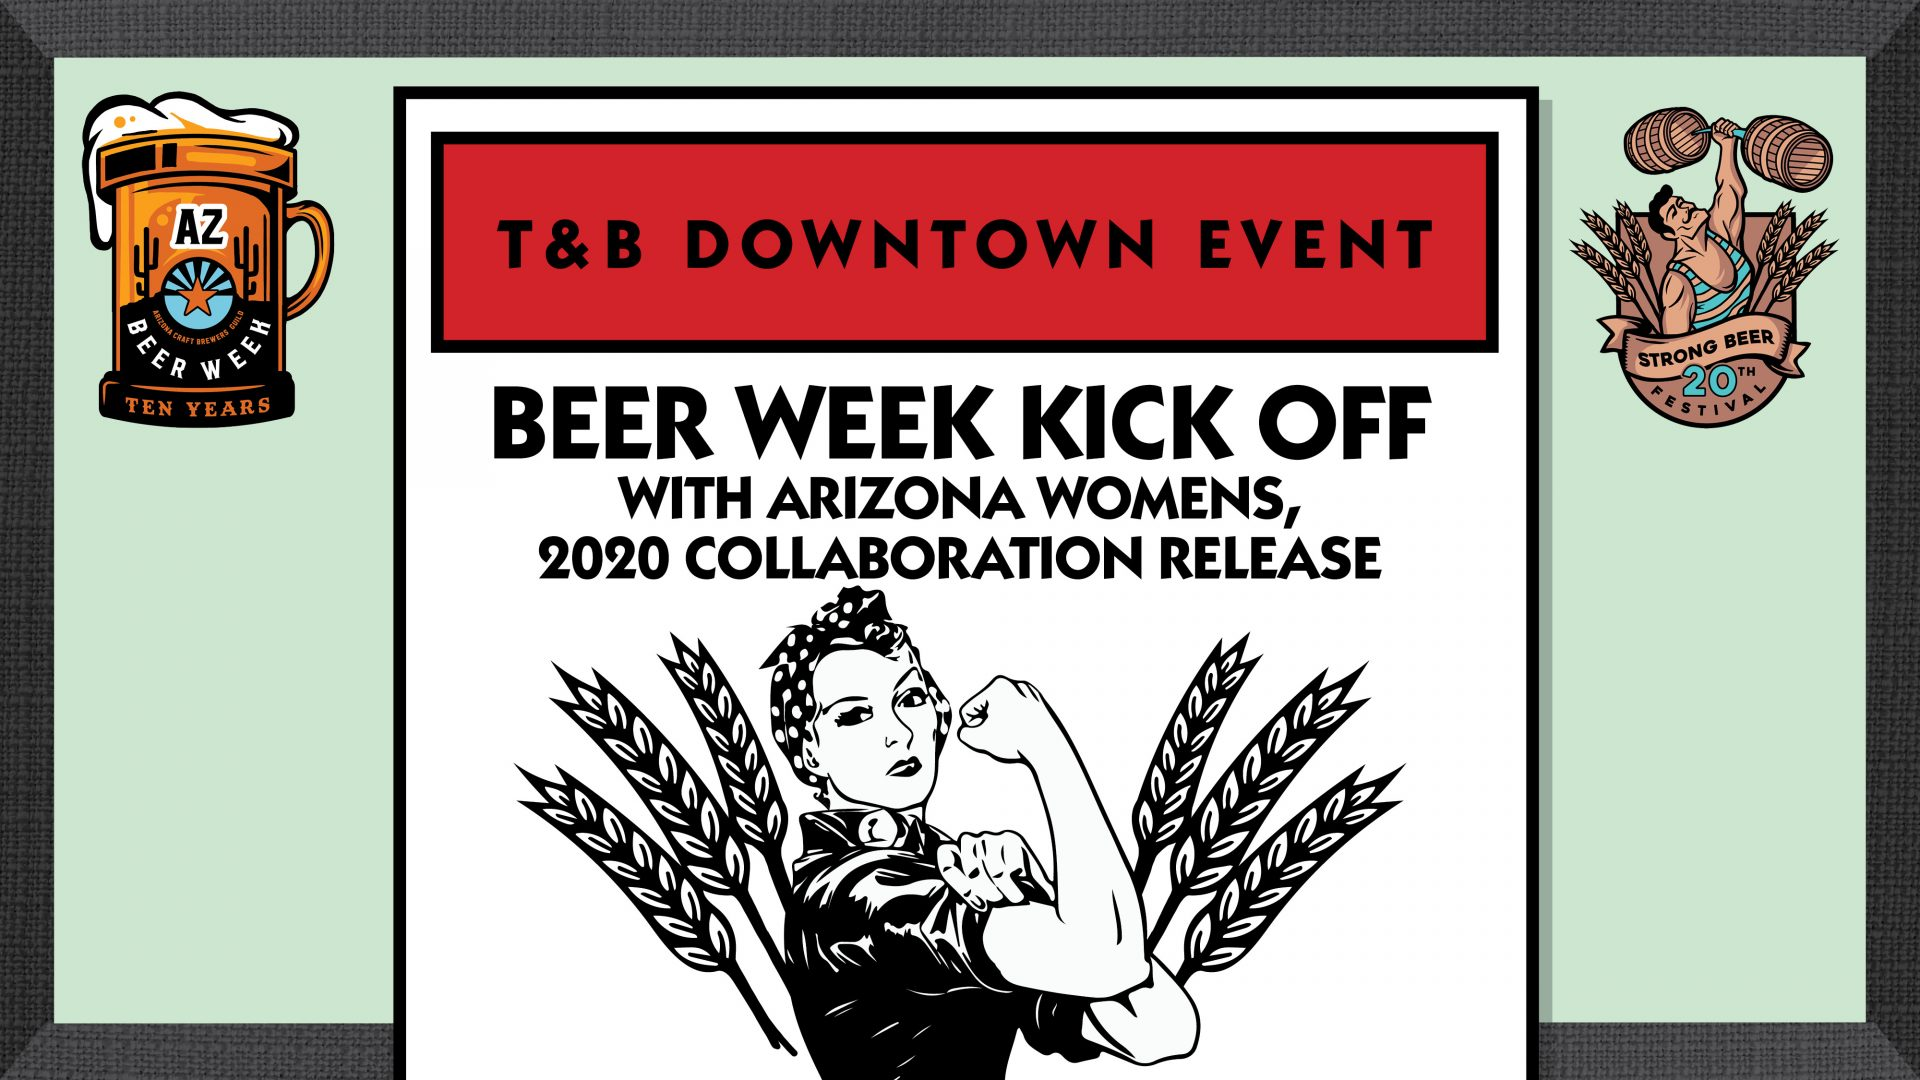 AZ Womens 2020 Collab 'Limitless IPA' Release at T&B Downtown!